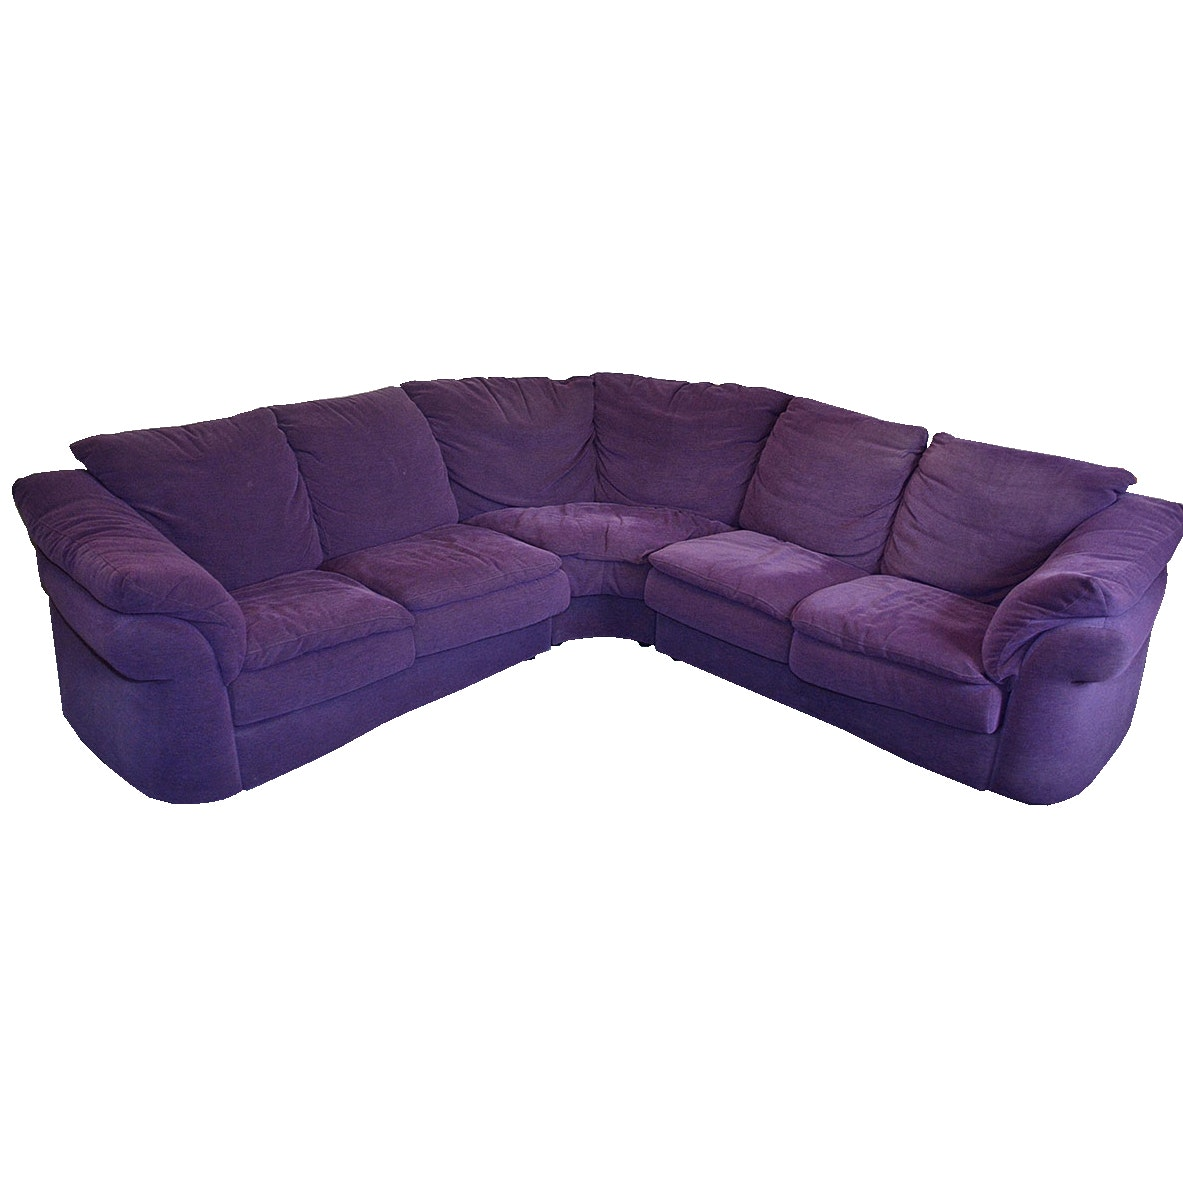 Natuzzi Purple Sectional Sofa ...